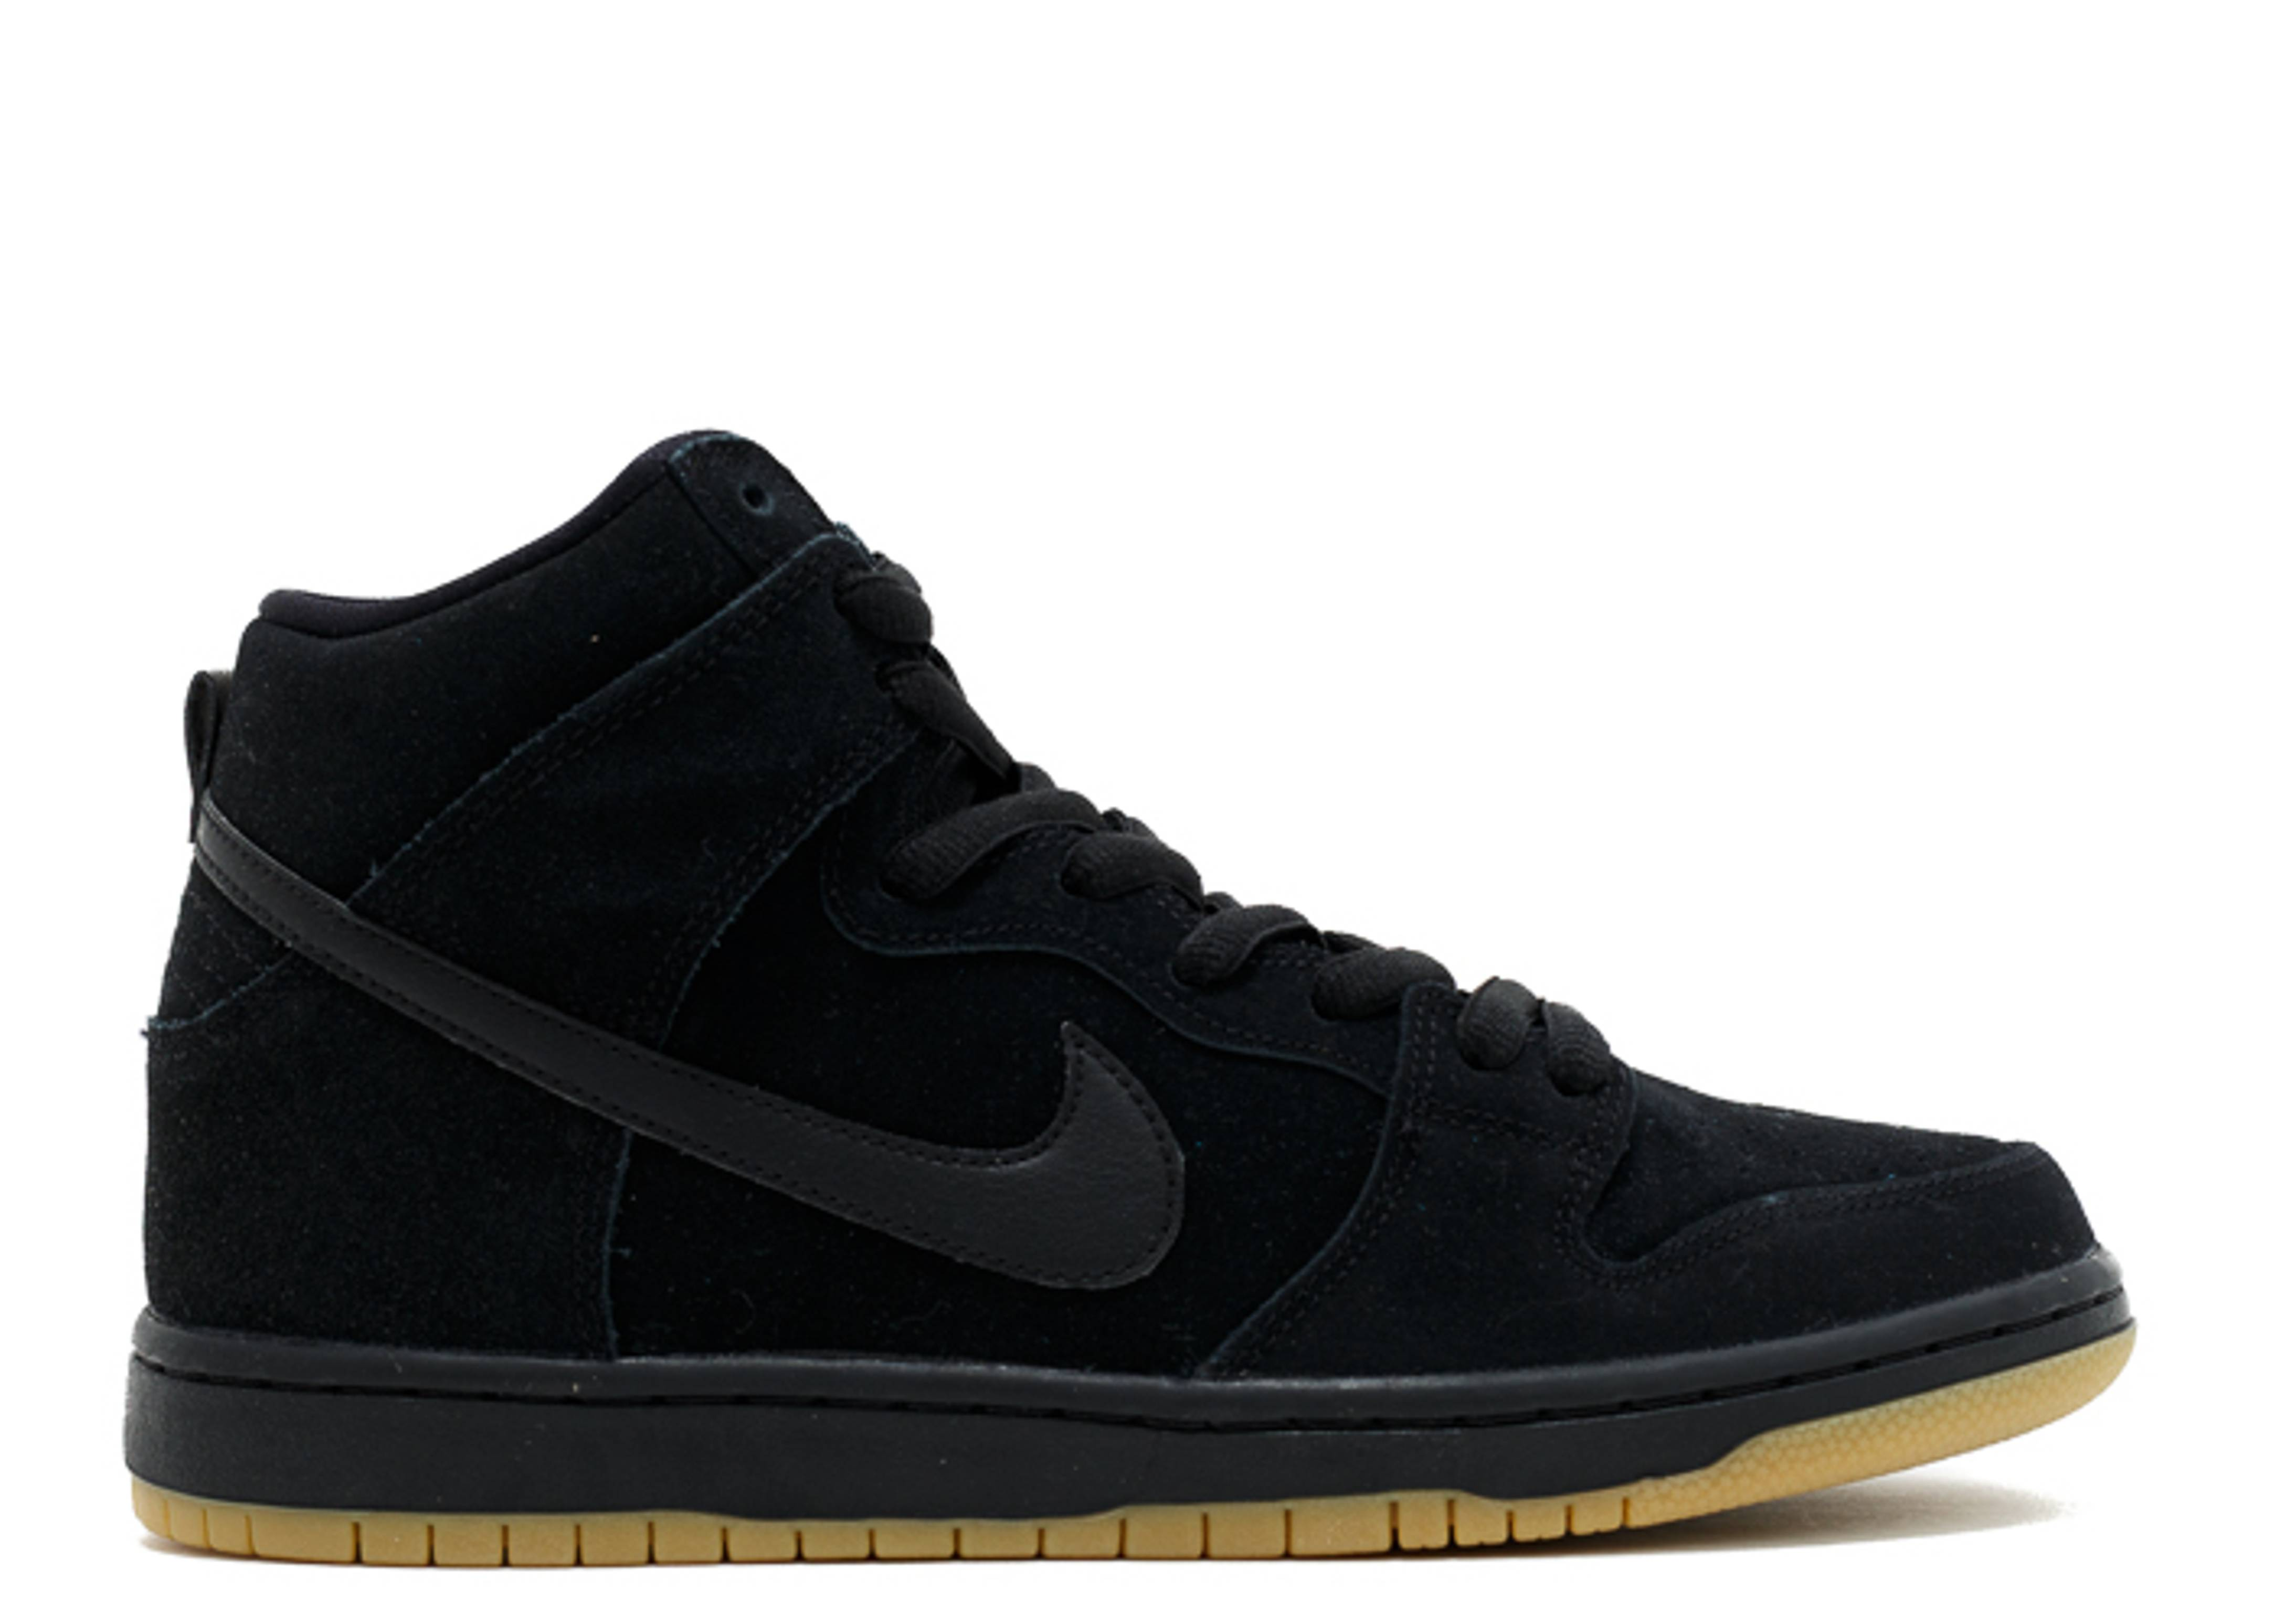 6aee9137bc top quality dunk high pro sb nike 305050 029 black black gum light brown  flight club